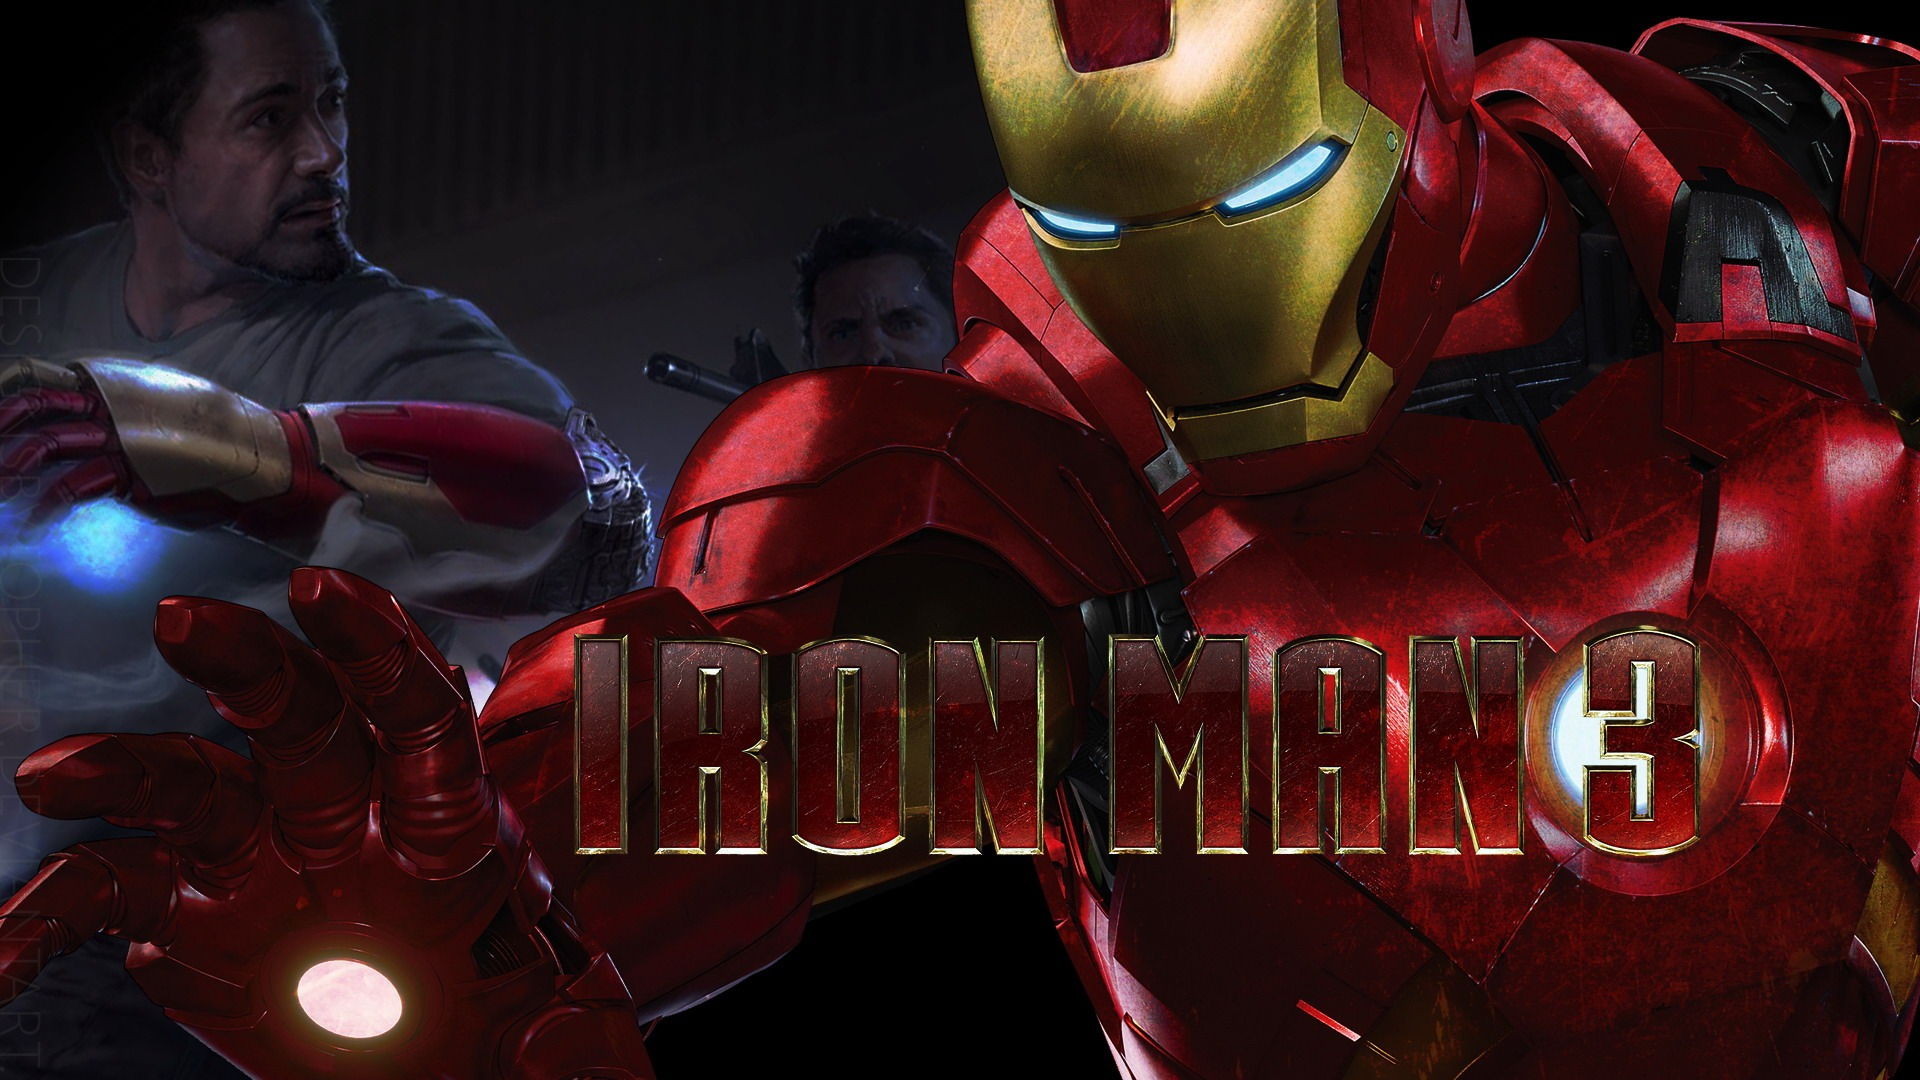 Iron Man 3 wallpaper 3